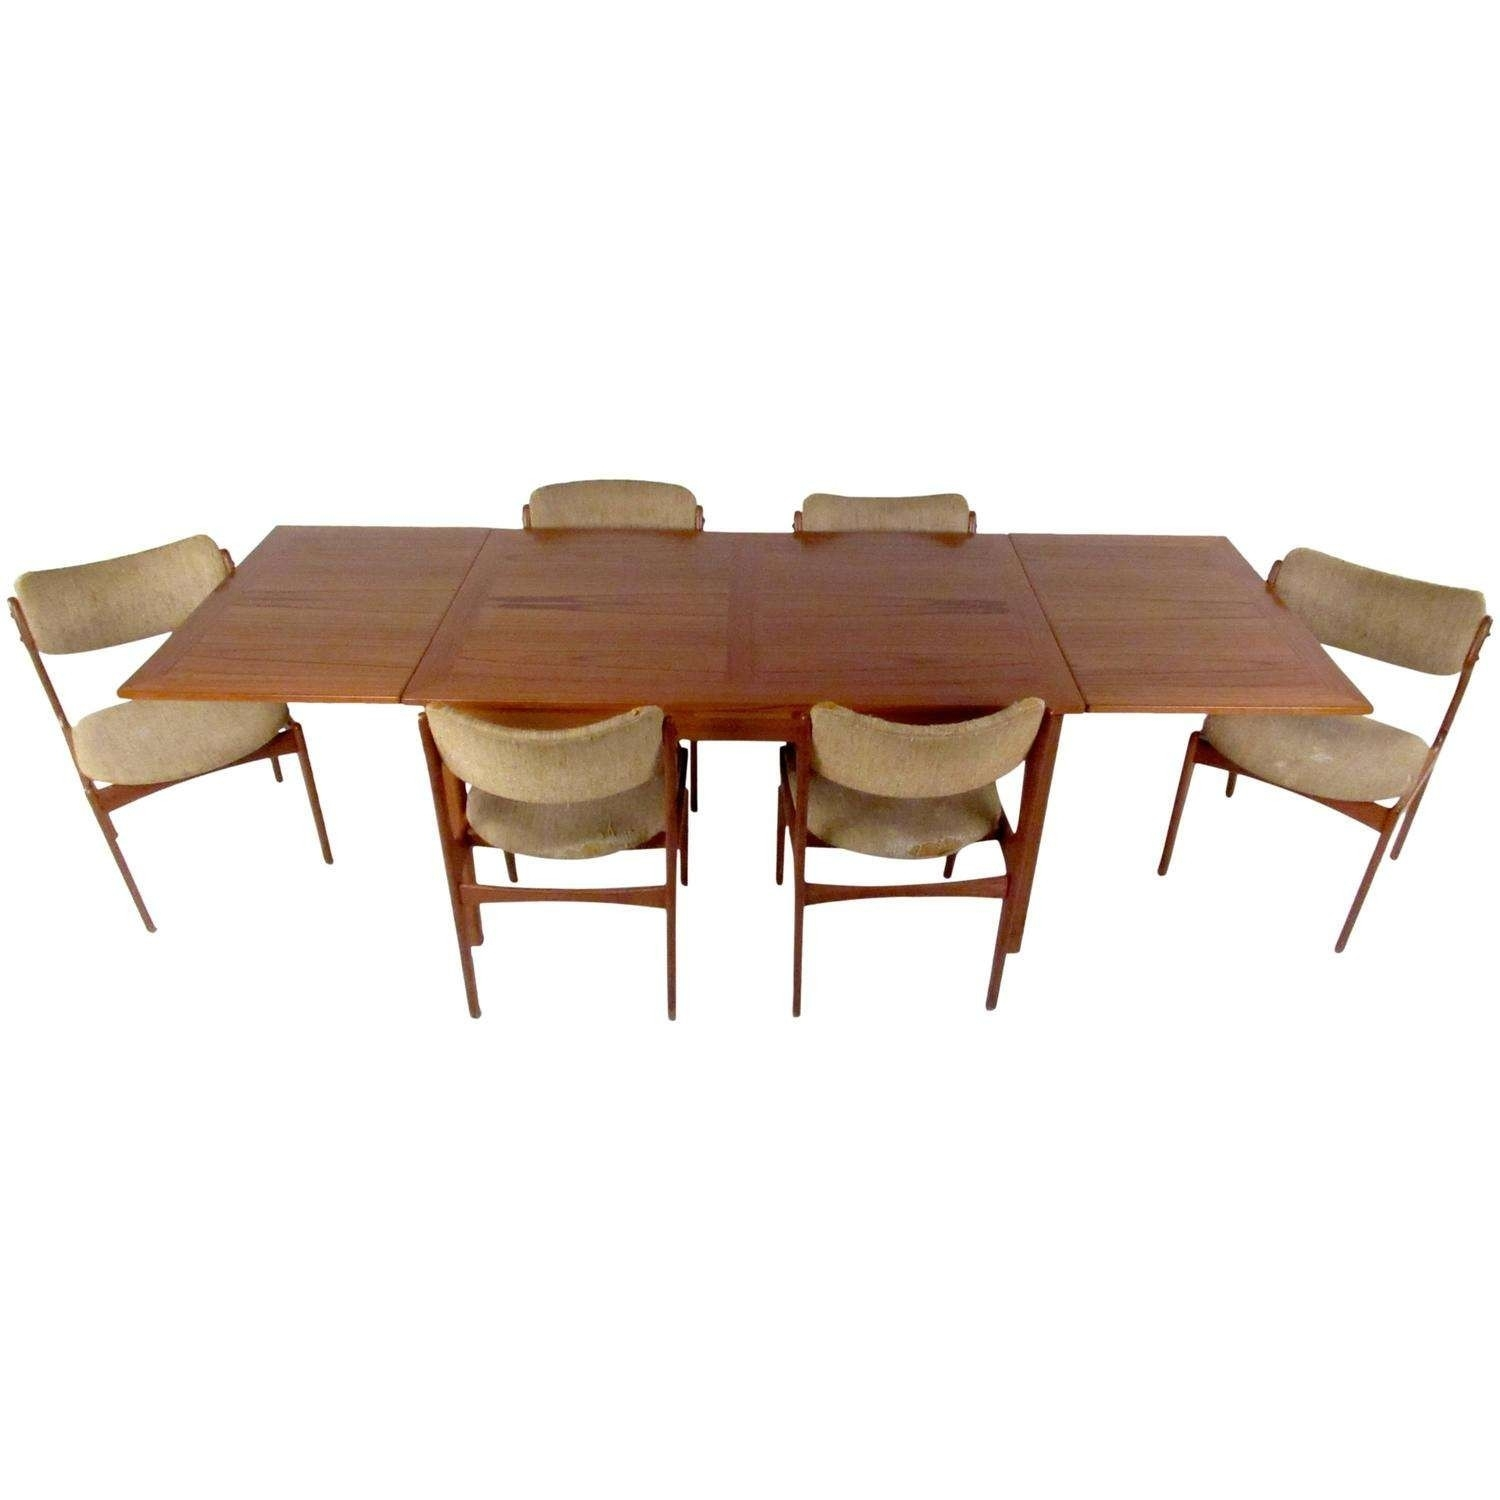 Bristol Dining Table Fresh Mid Century Dining Set With Table And With Regard To Most Up To Date Magnolia Home English Country Oval Dining Tables (Image 2 of 20)